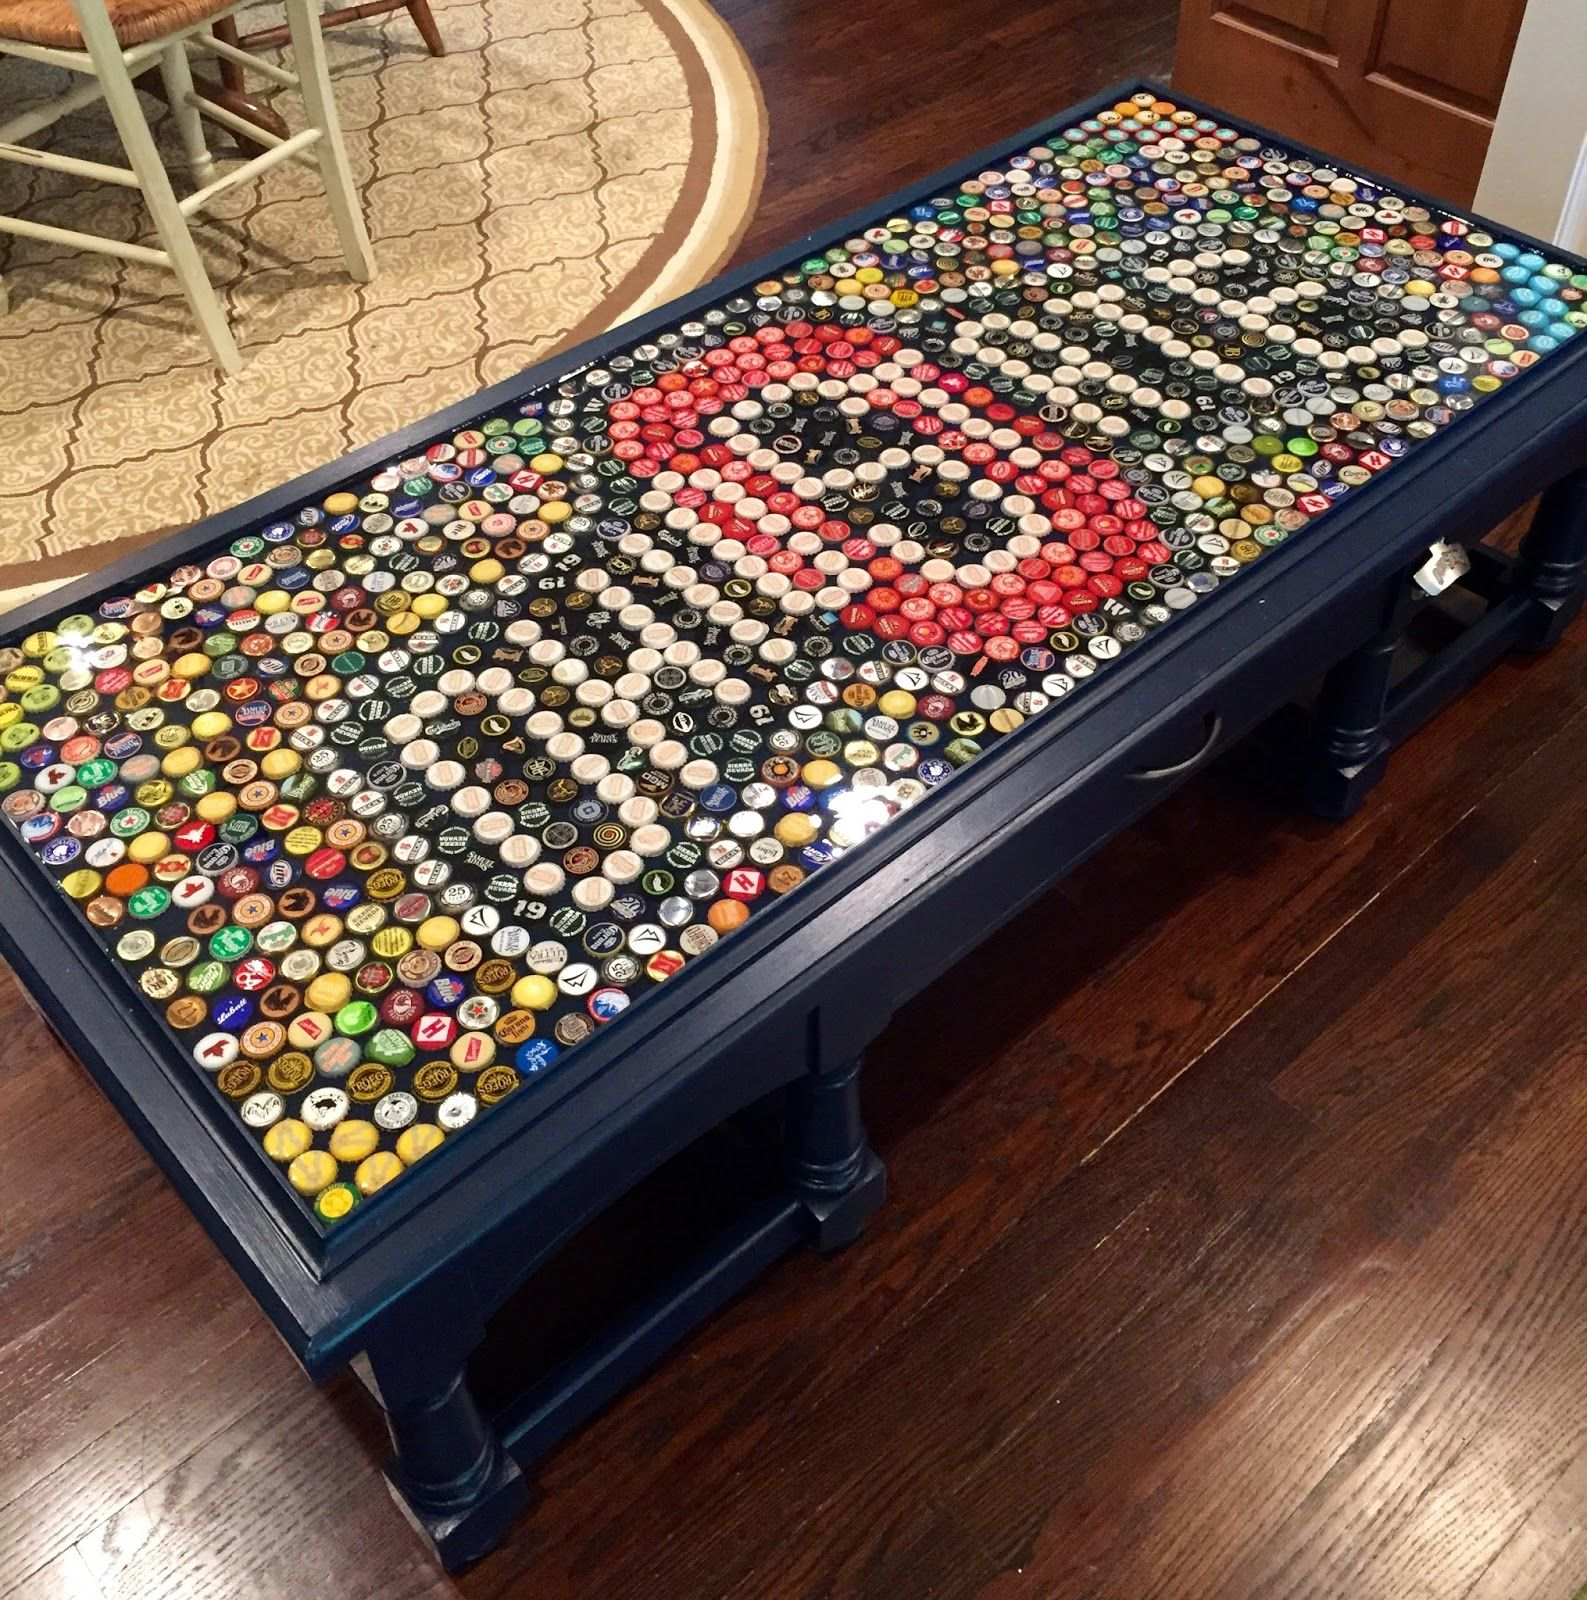 Here is Cal's Ohio State University Beer Cap Table